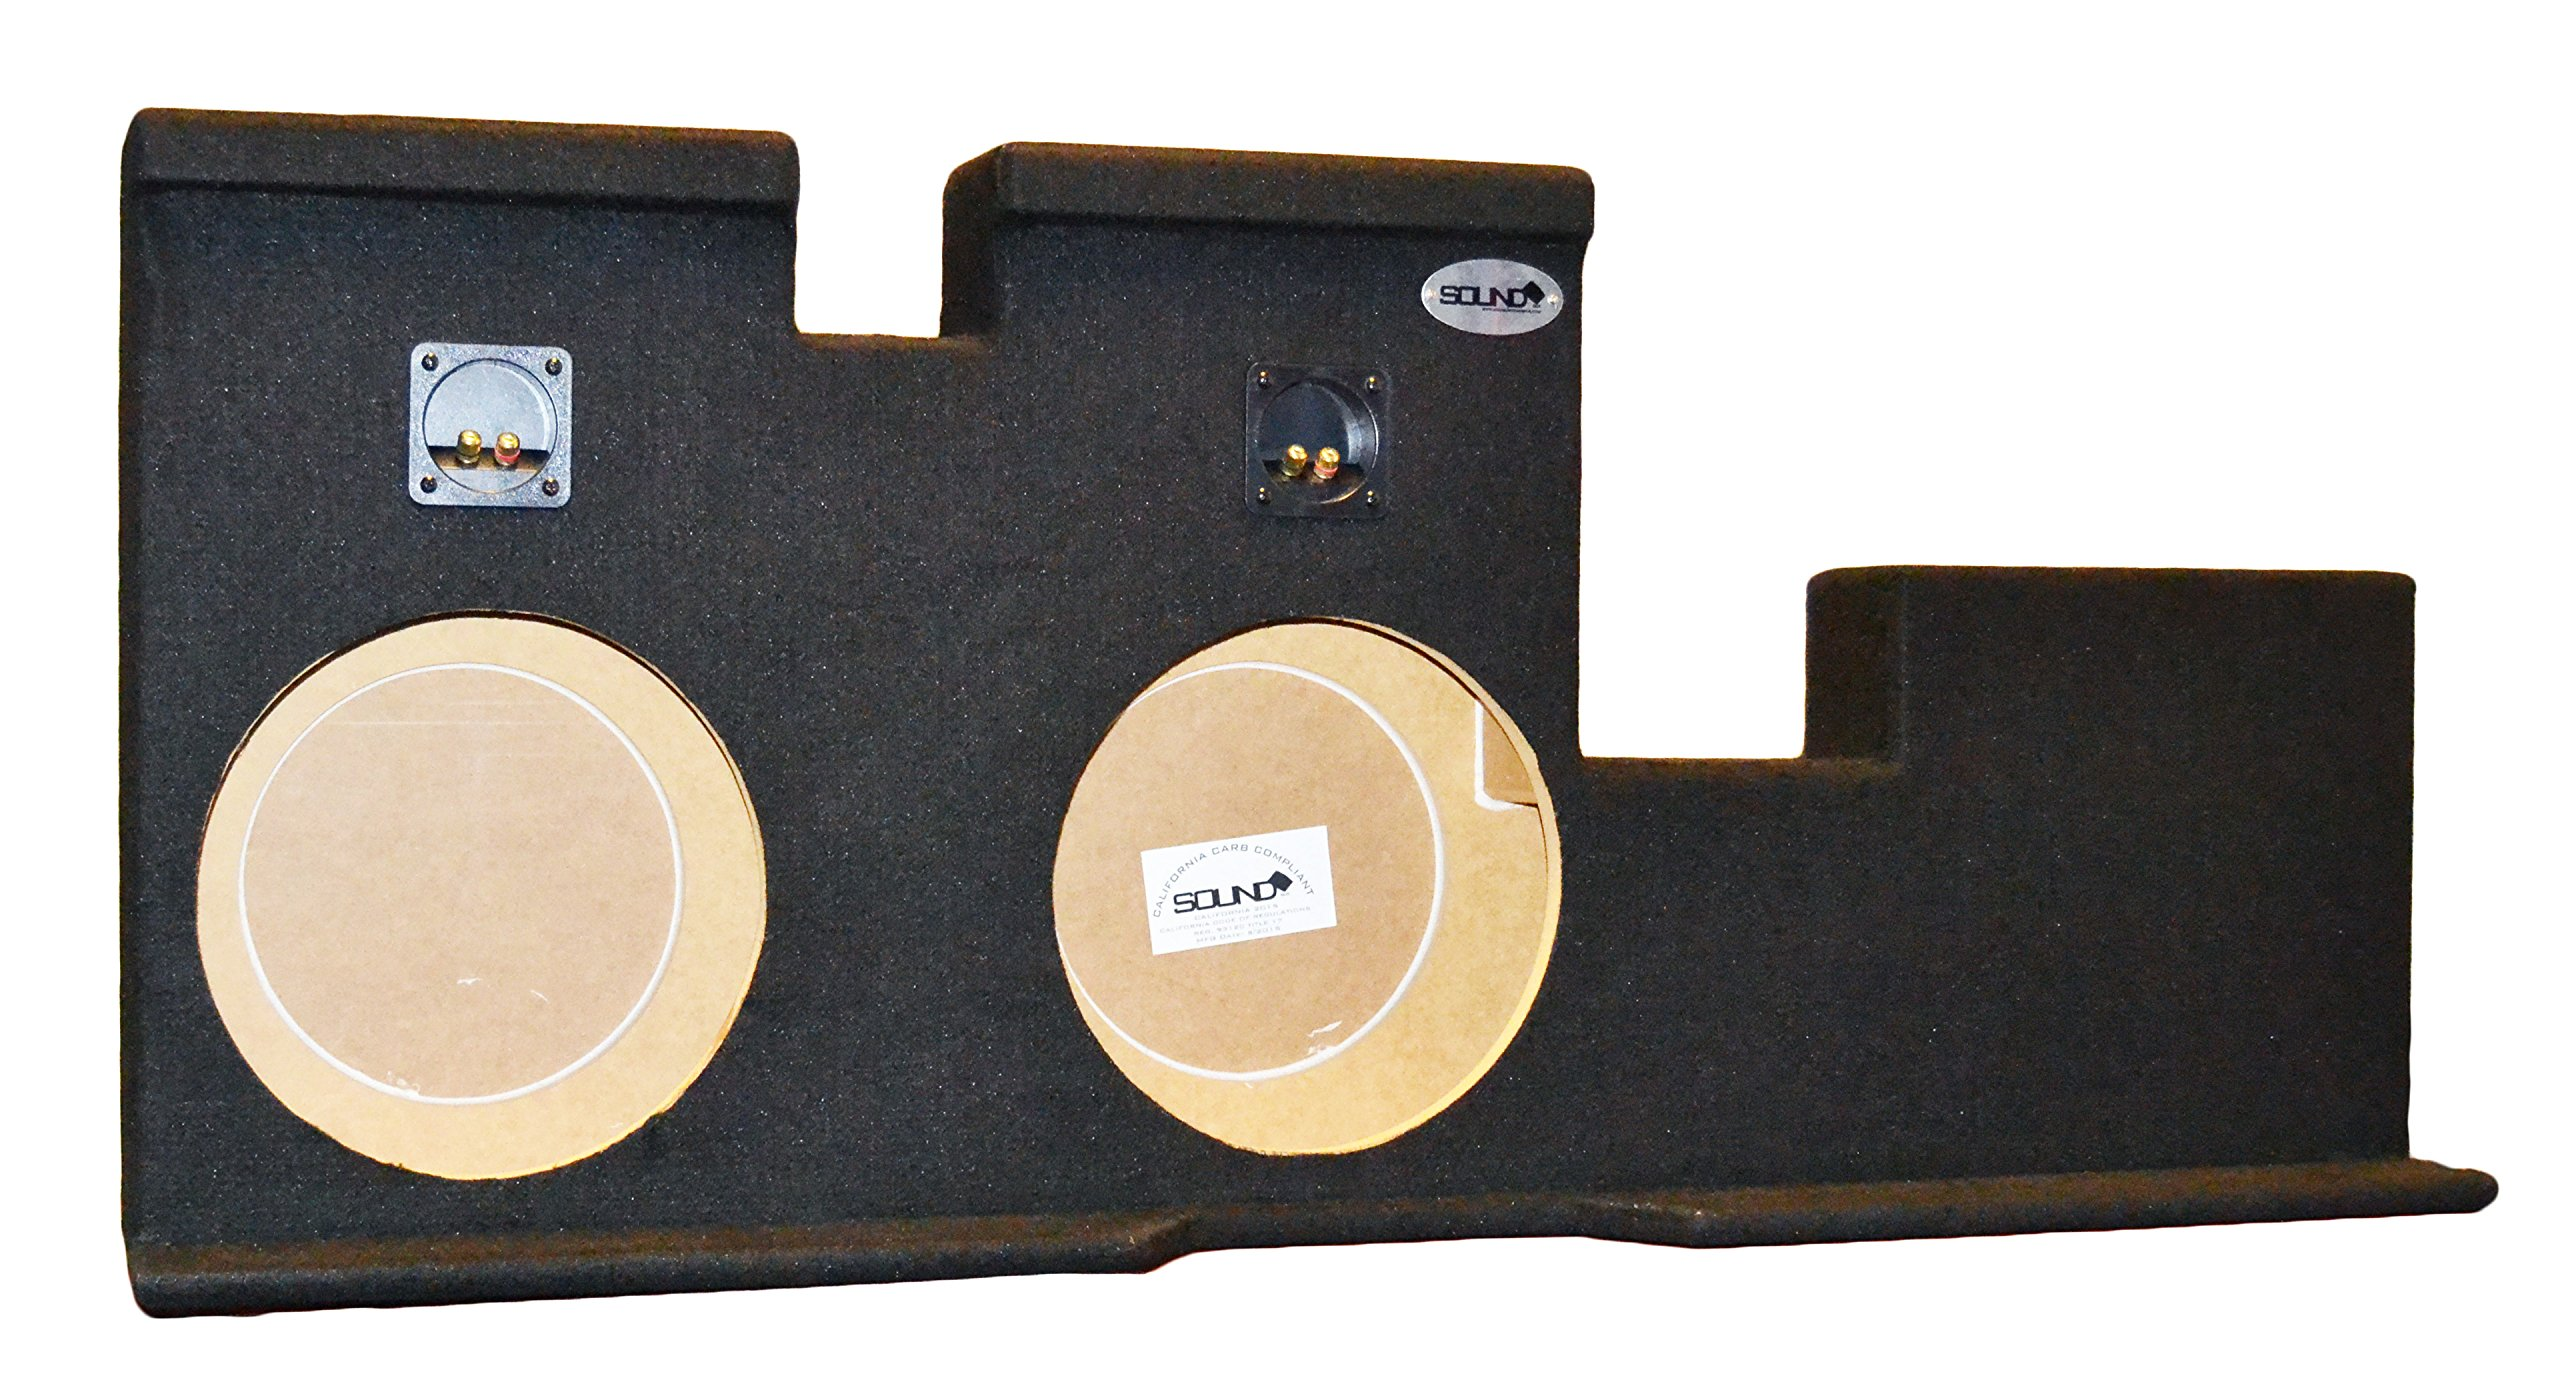 Toyota Tundra Doublecab Double 12'' Subwoofer Enclosure Sub Box 2007-2015, CARB COMPLIANT MDF! DONT BUY CHEAPER NON COMPLIANT MDF!